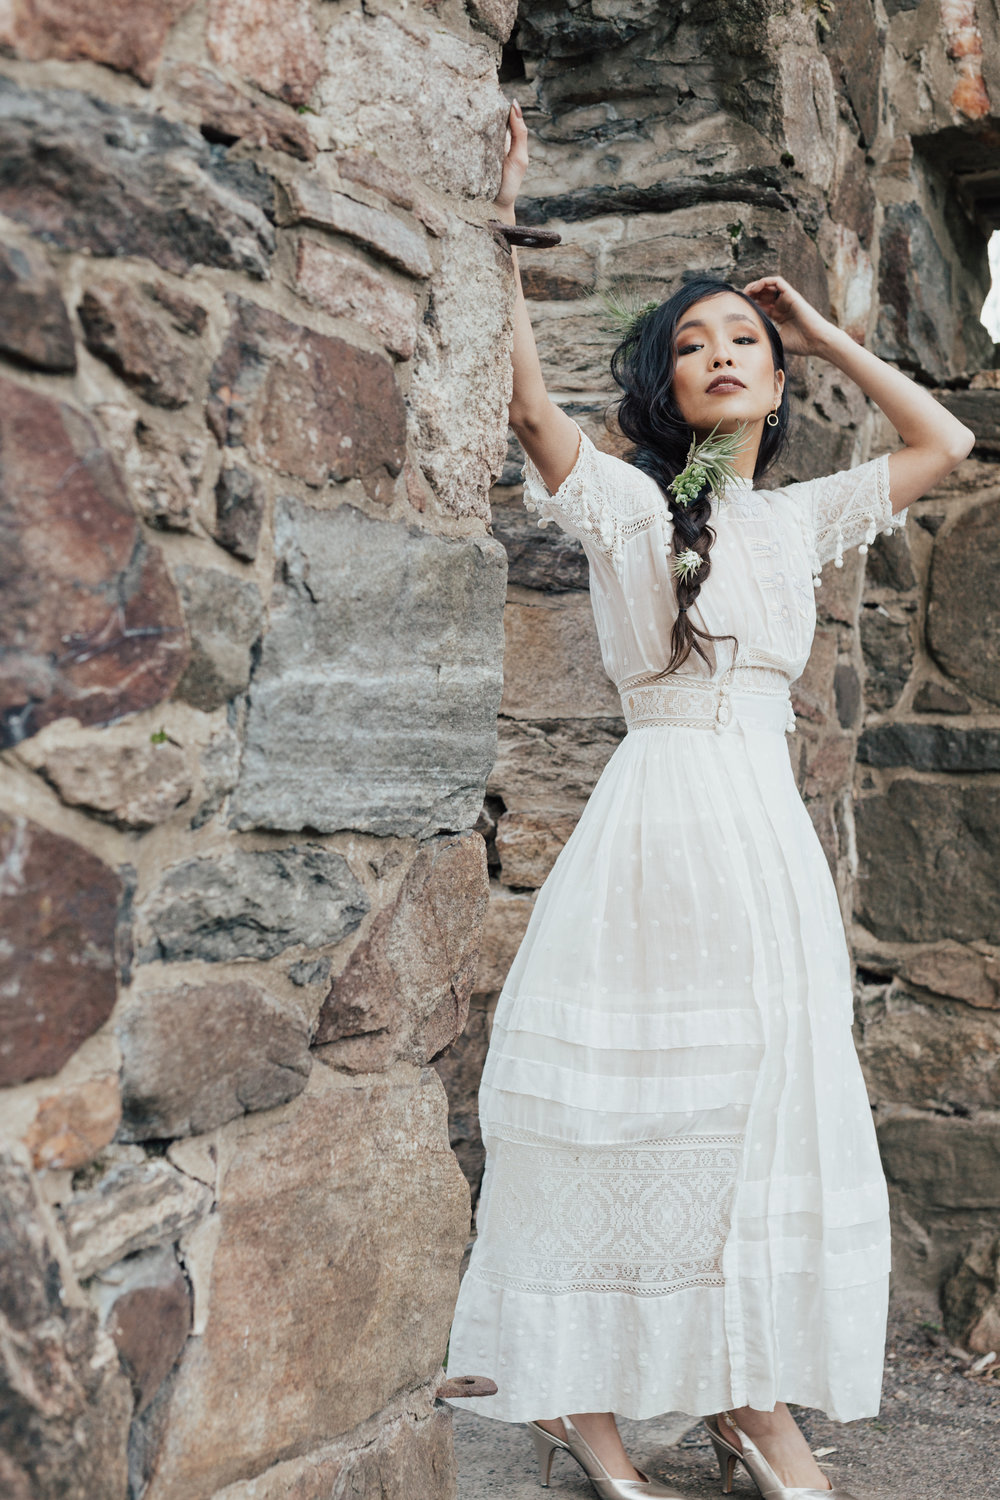 GO VINTAGE - You can often find BEAUTIFUL white dresses at vintage stores! The vibes vintage clothes carry… it's indescribable but white vintage dress is a must have if you adore vintage clothing. Play around with accessories to change up!